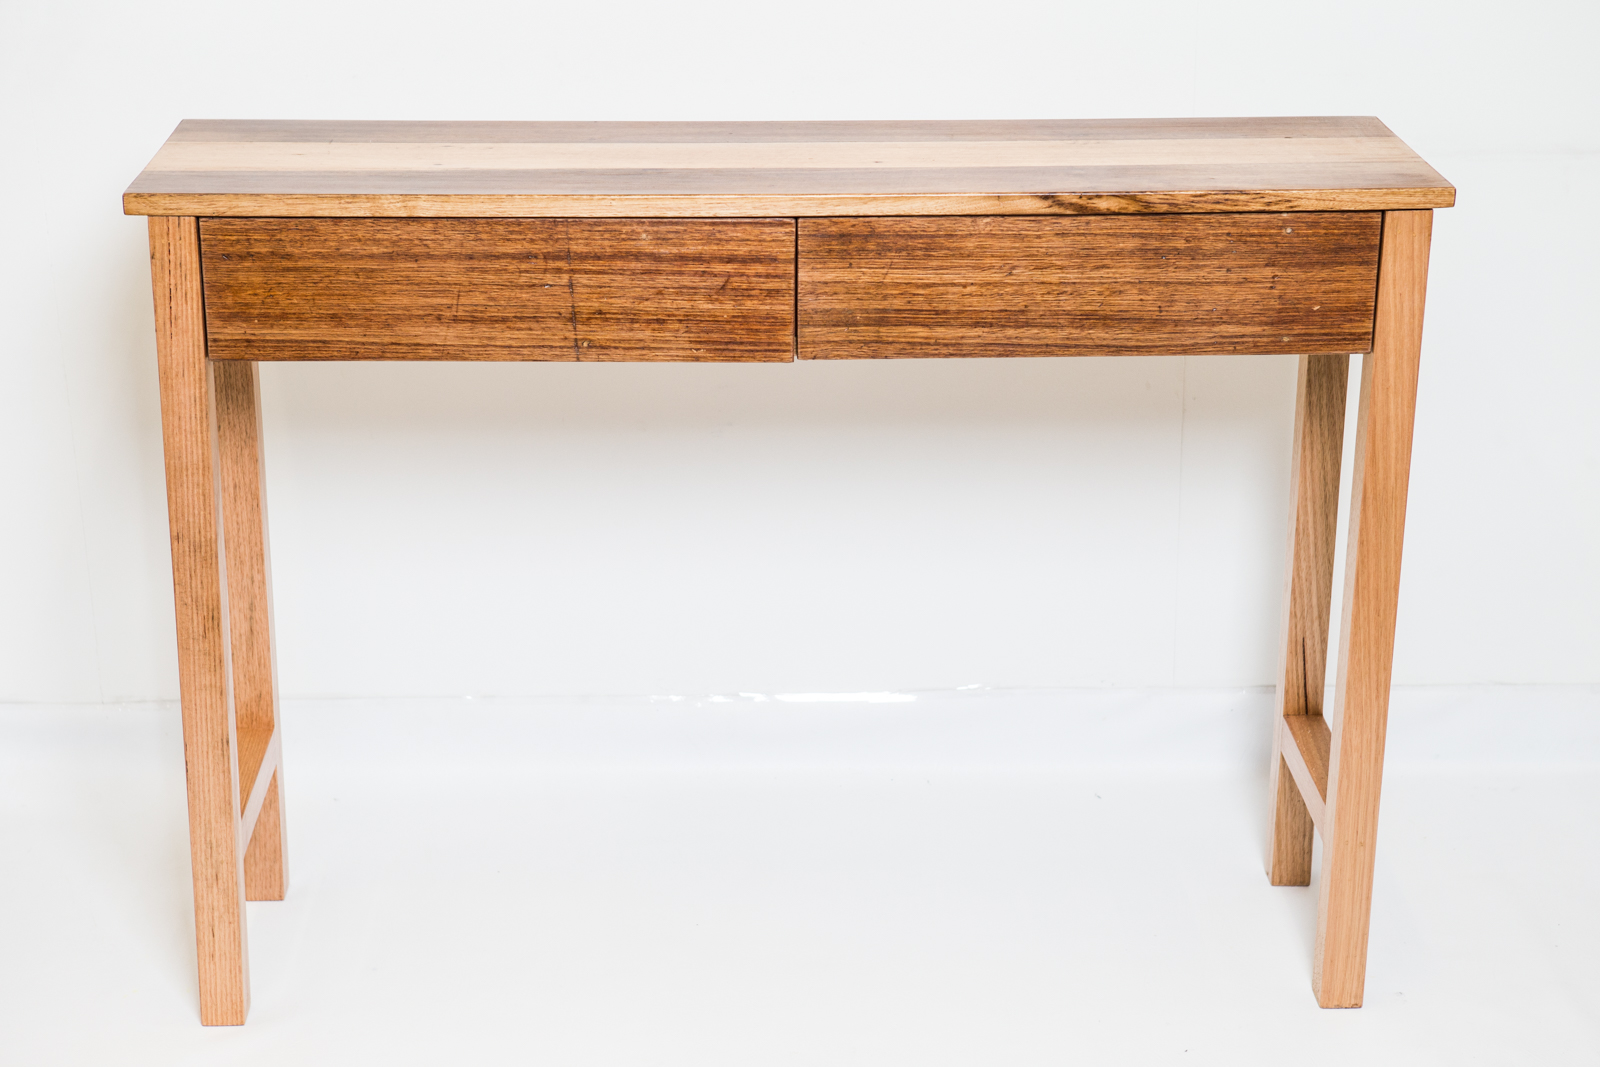 Hall table with drawer and straight legs